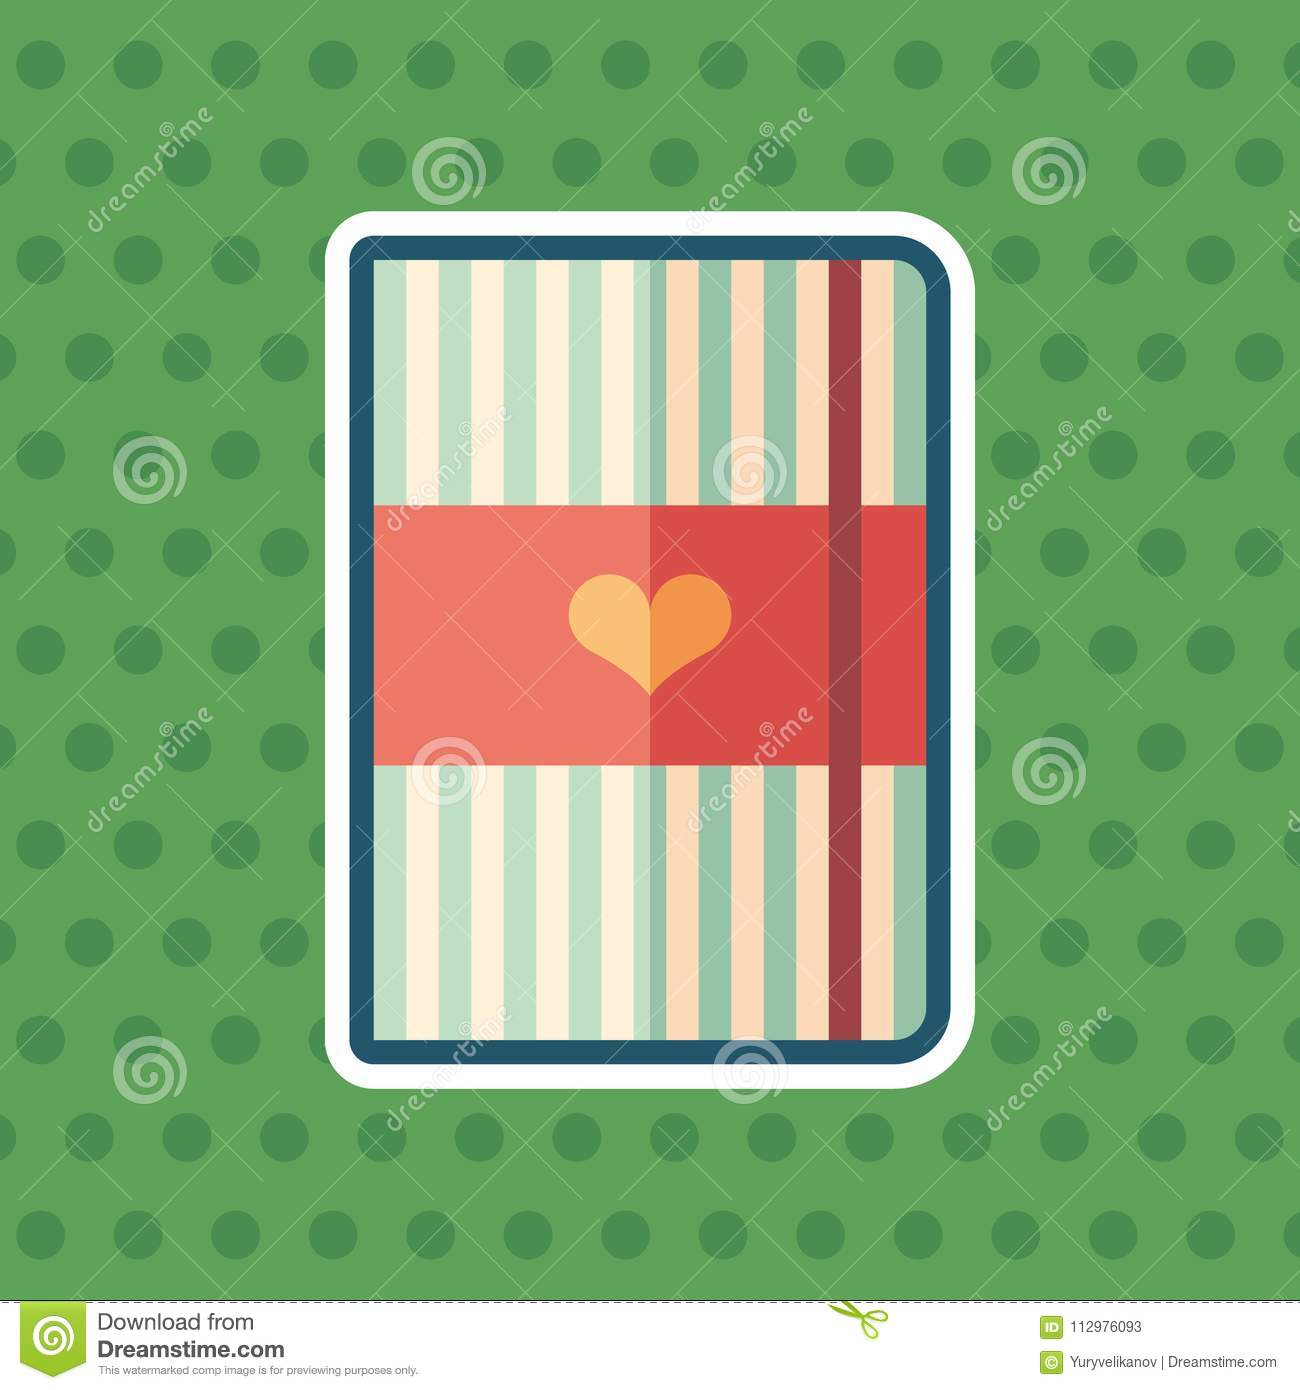 Striped notepad with heart sticker flat icon with color background.